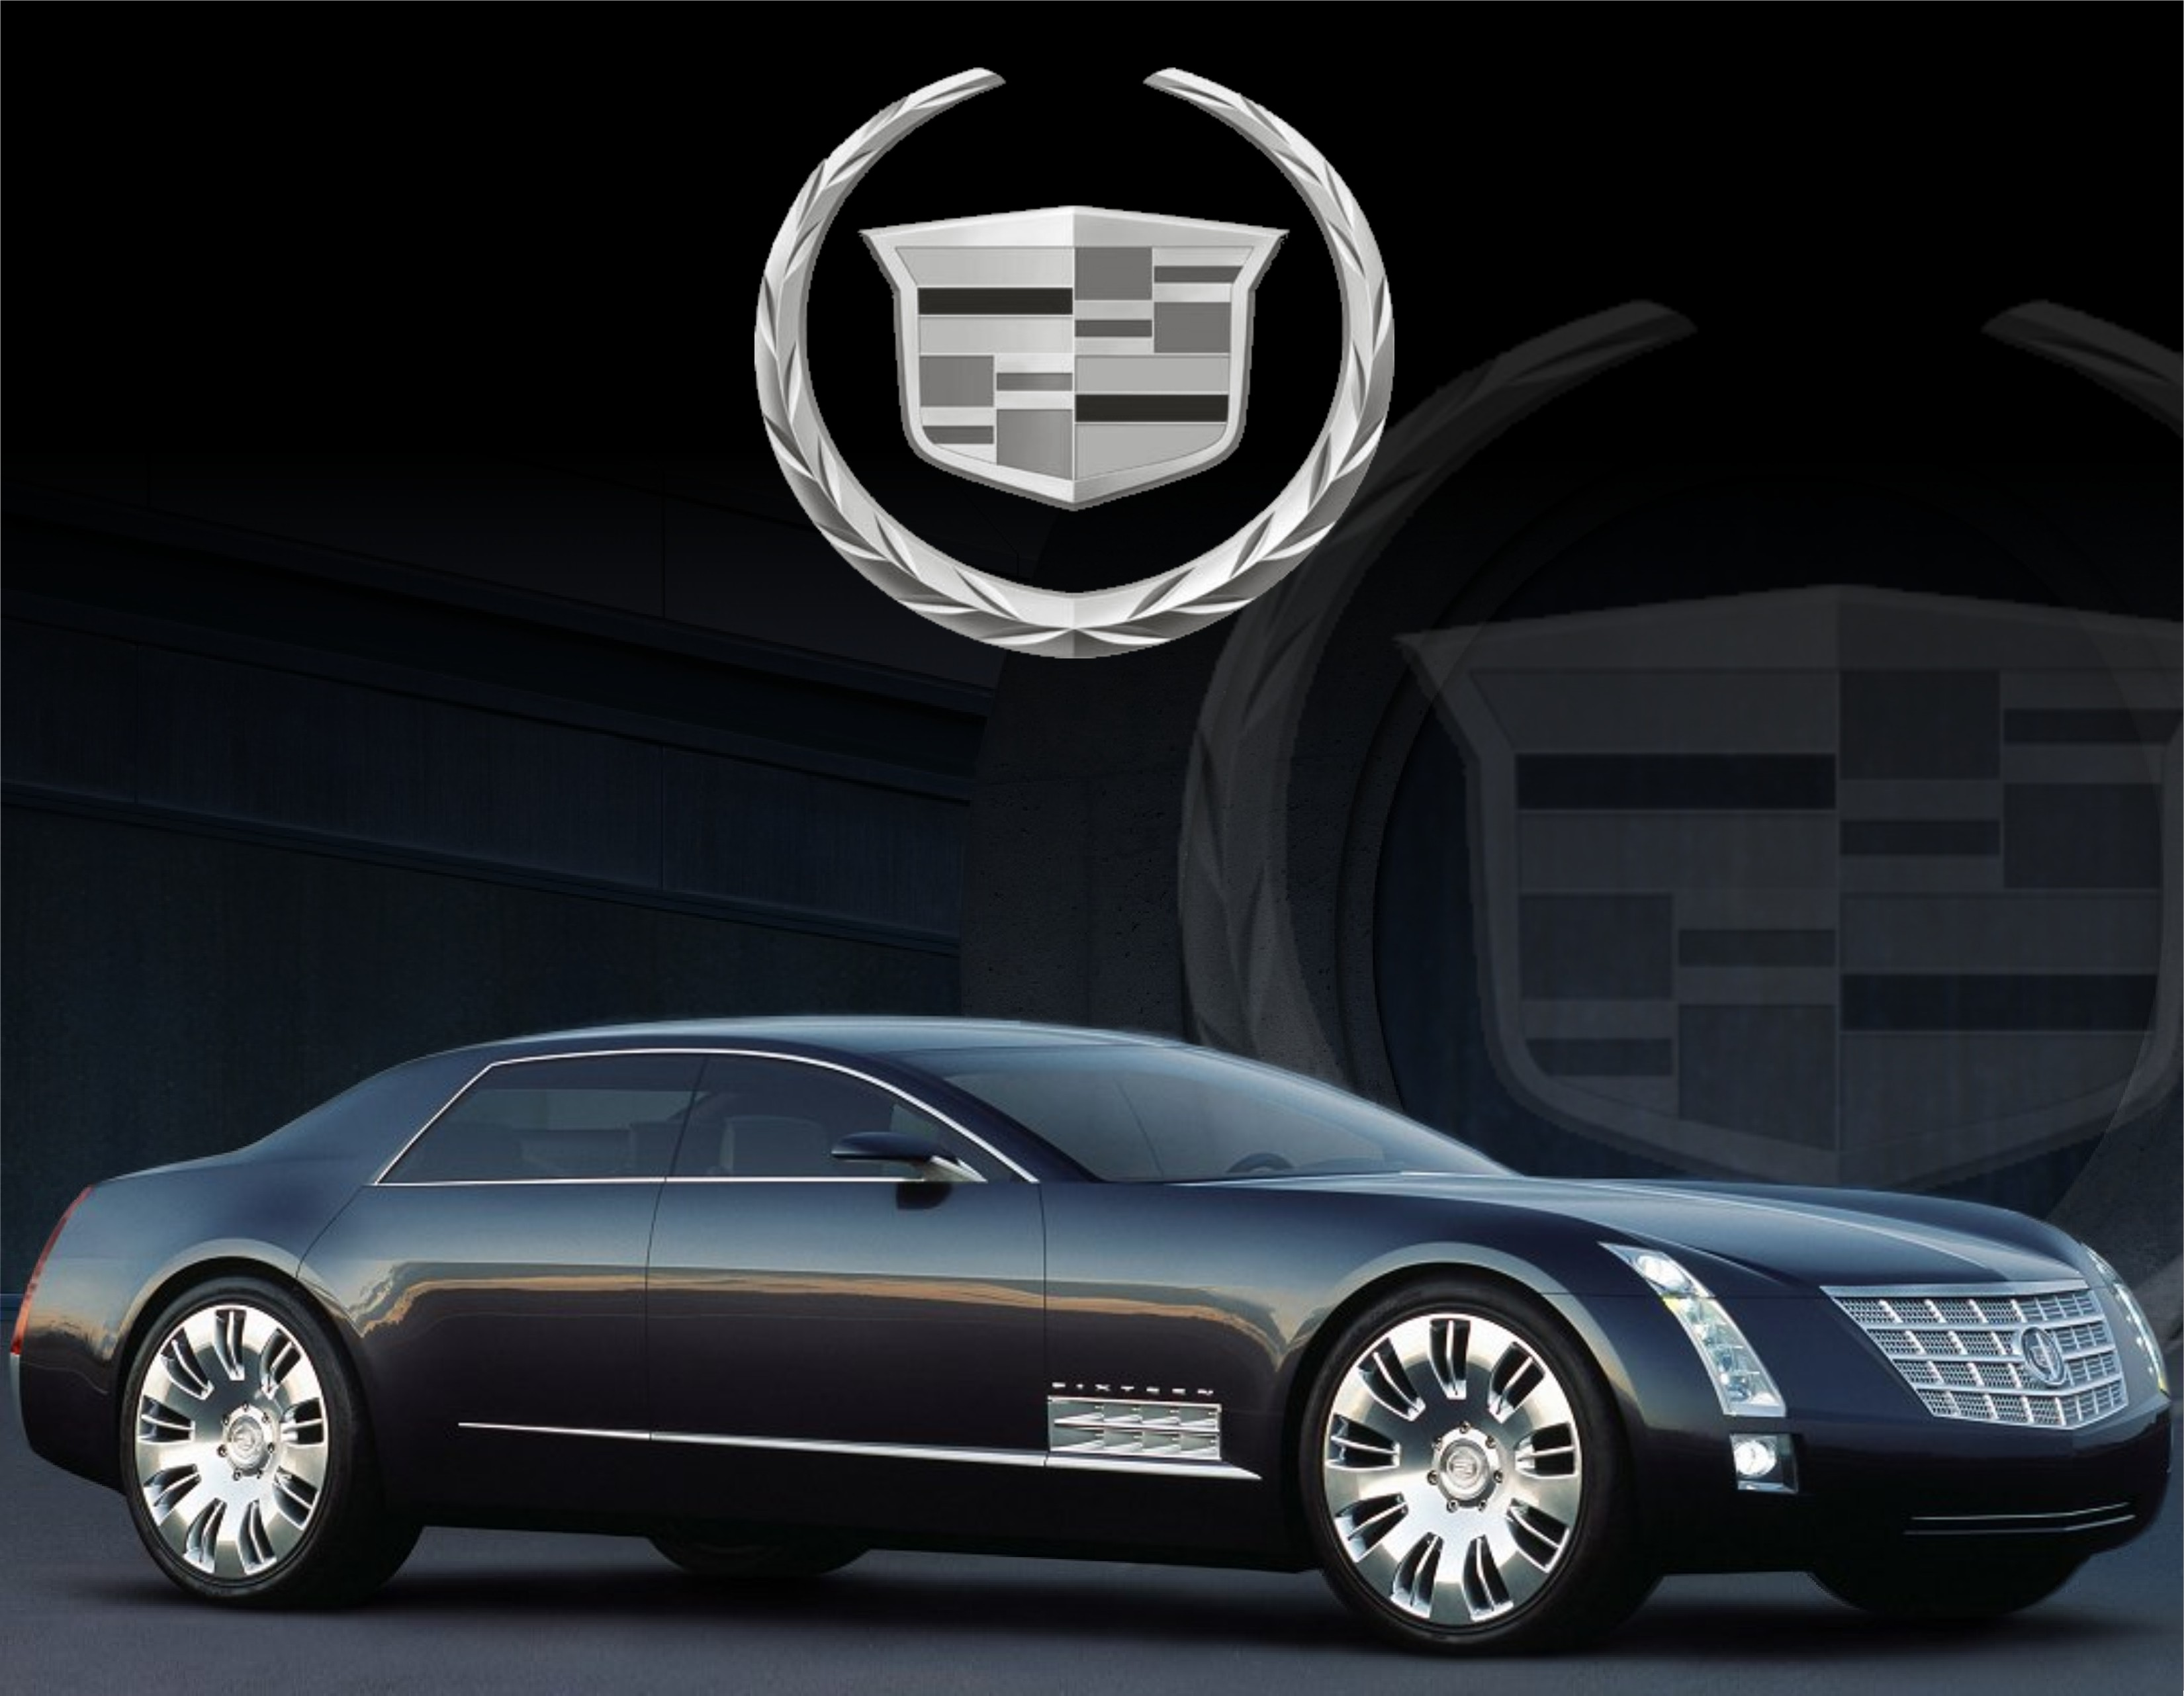 Cadillac Wallpaper For Background